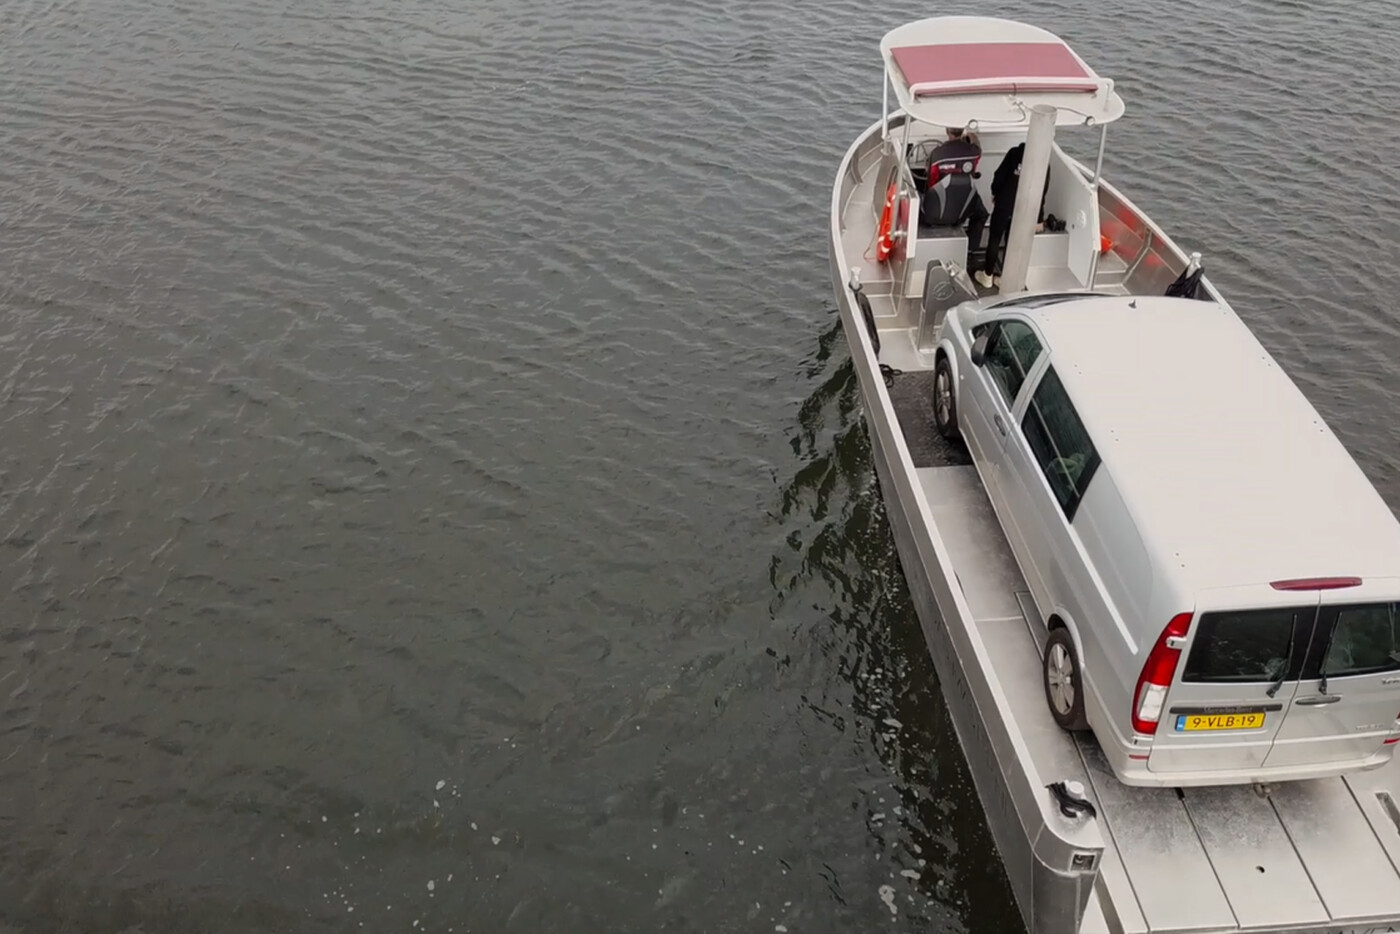 Load Master Boats, Willem Nieland Design, Electric Workboat, Workboat, Aluminium Workboat,Padmos Industrial And Marine Motors, Imansson Products, Imansson Electric Motor, Imansson Elektromotor, Electric Boating, Green Energy, Green Boating, Electric Offshore Boating